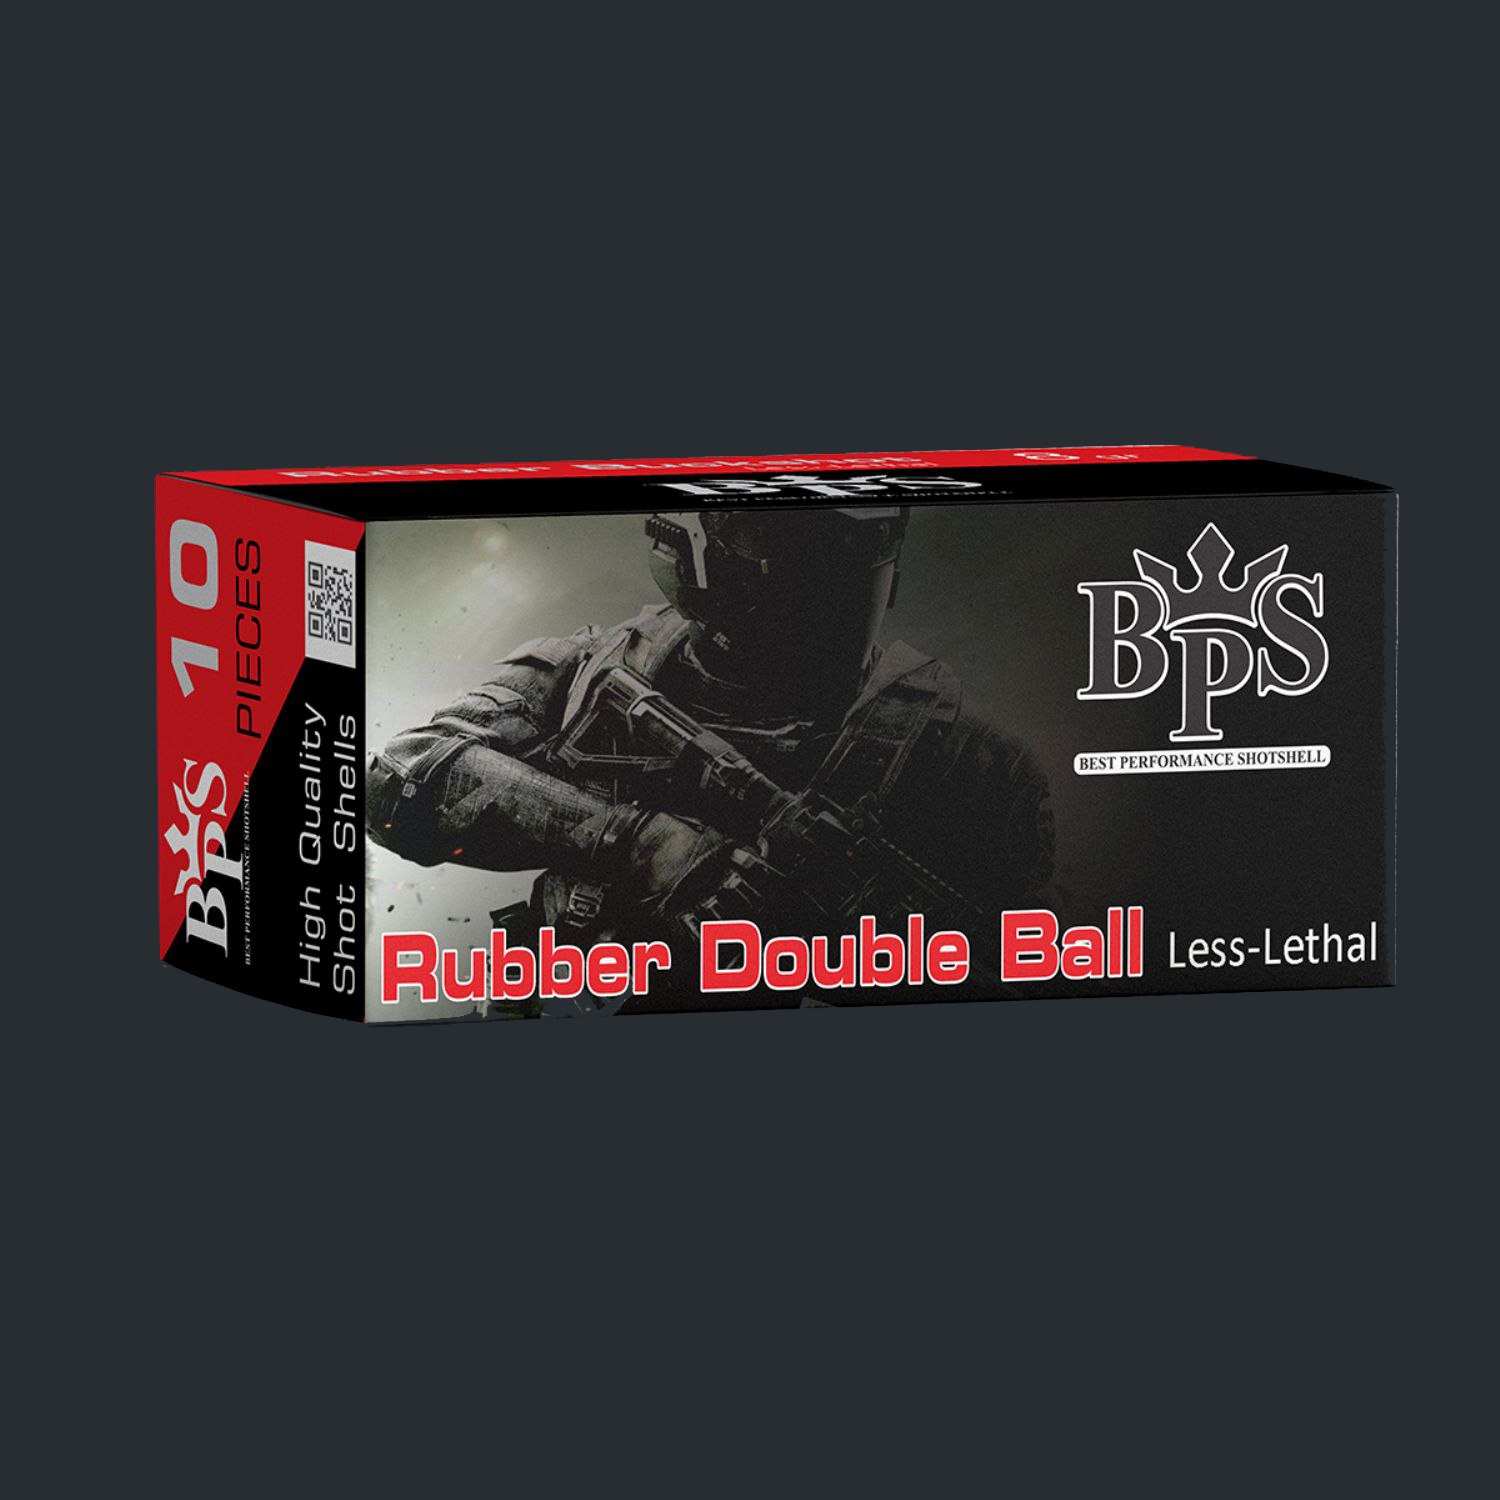 12 cal Rubber Double Ball